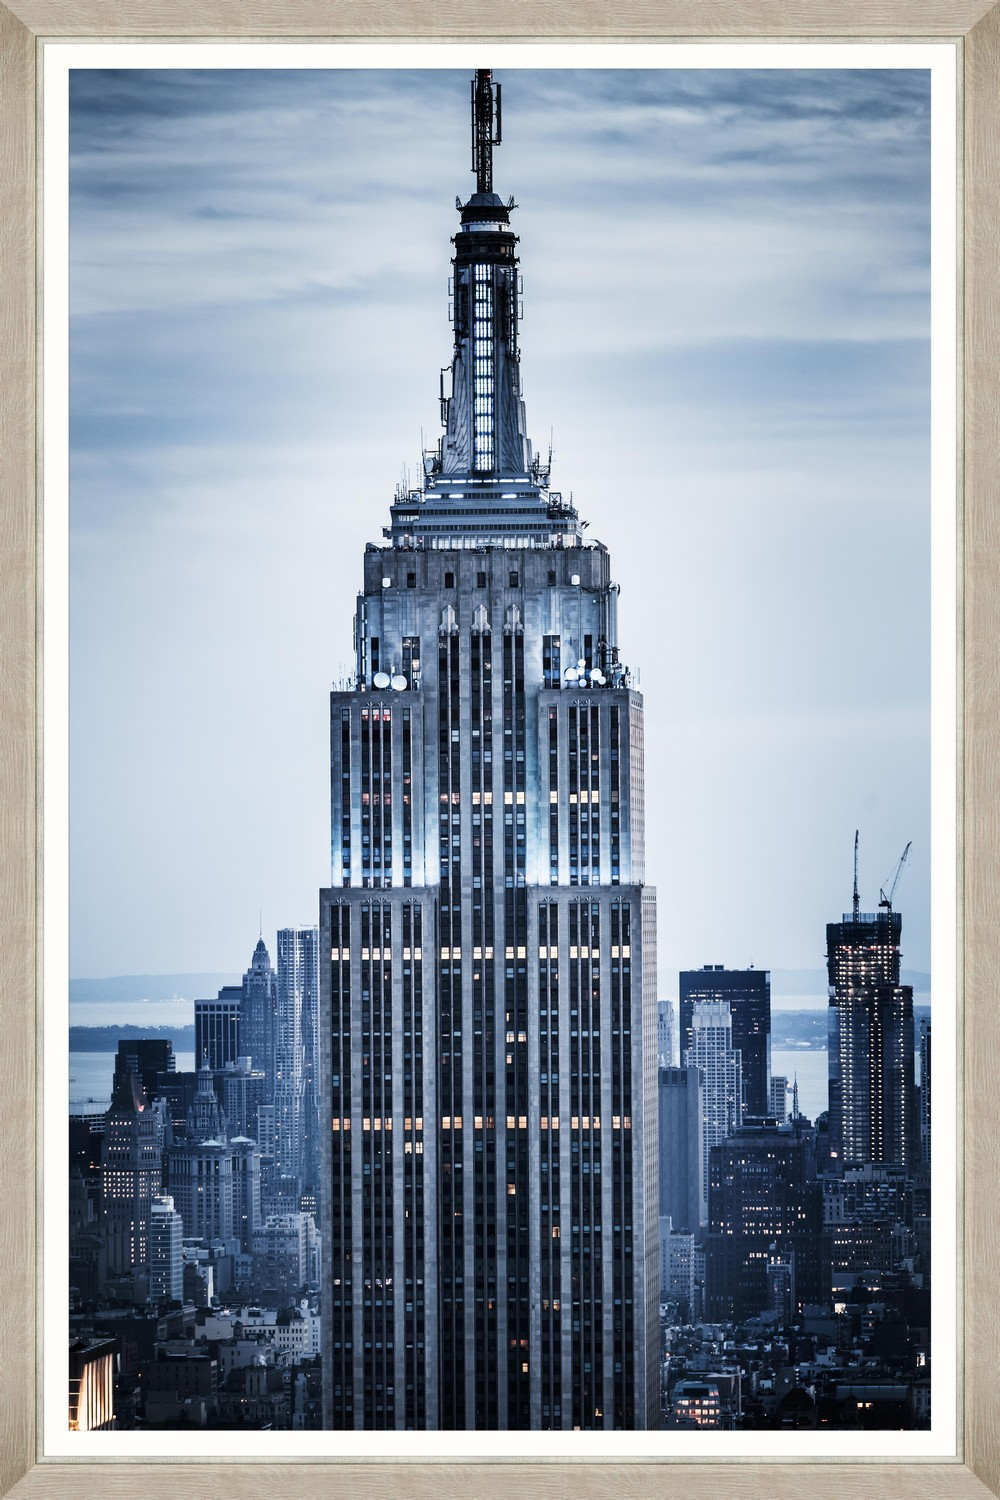 Tablou Framed Art Great Empire State imagine